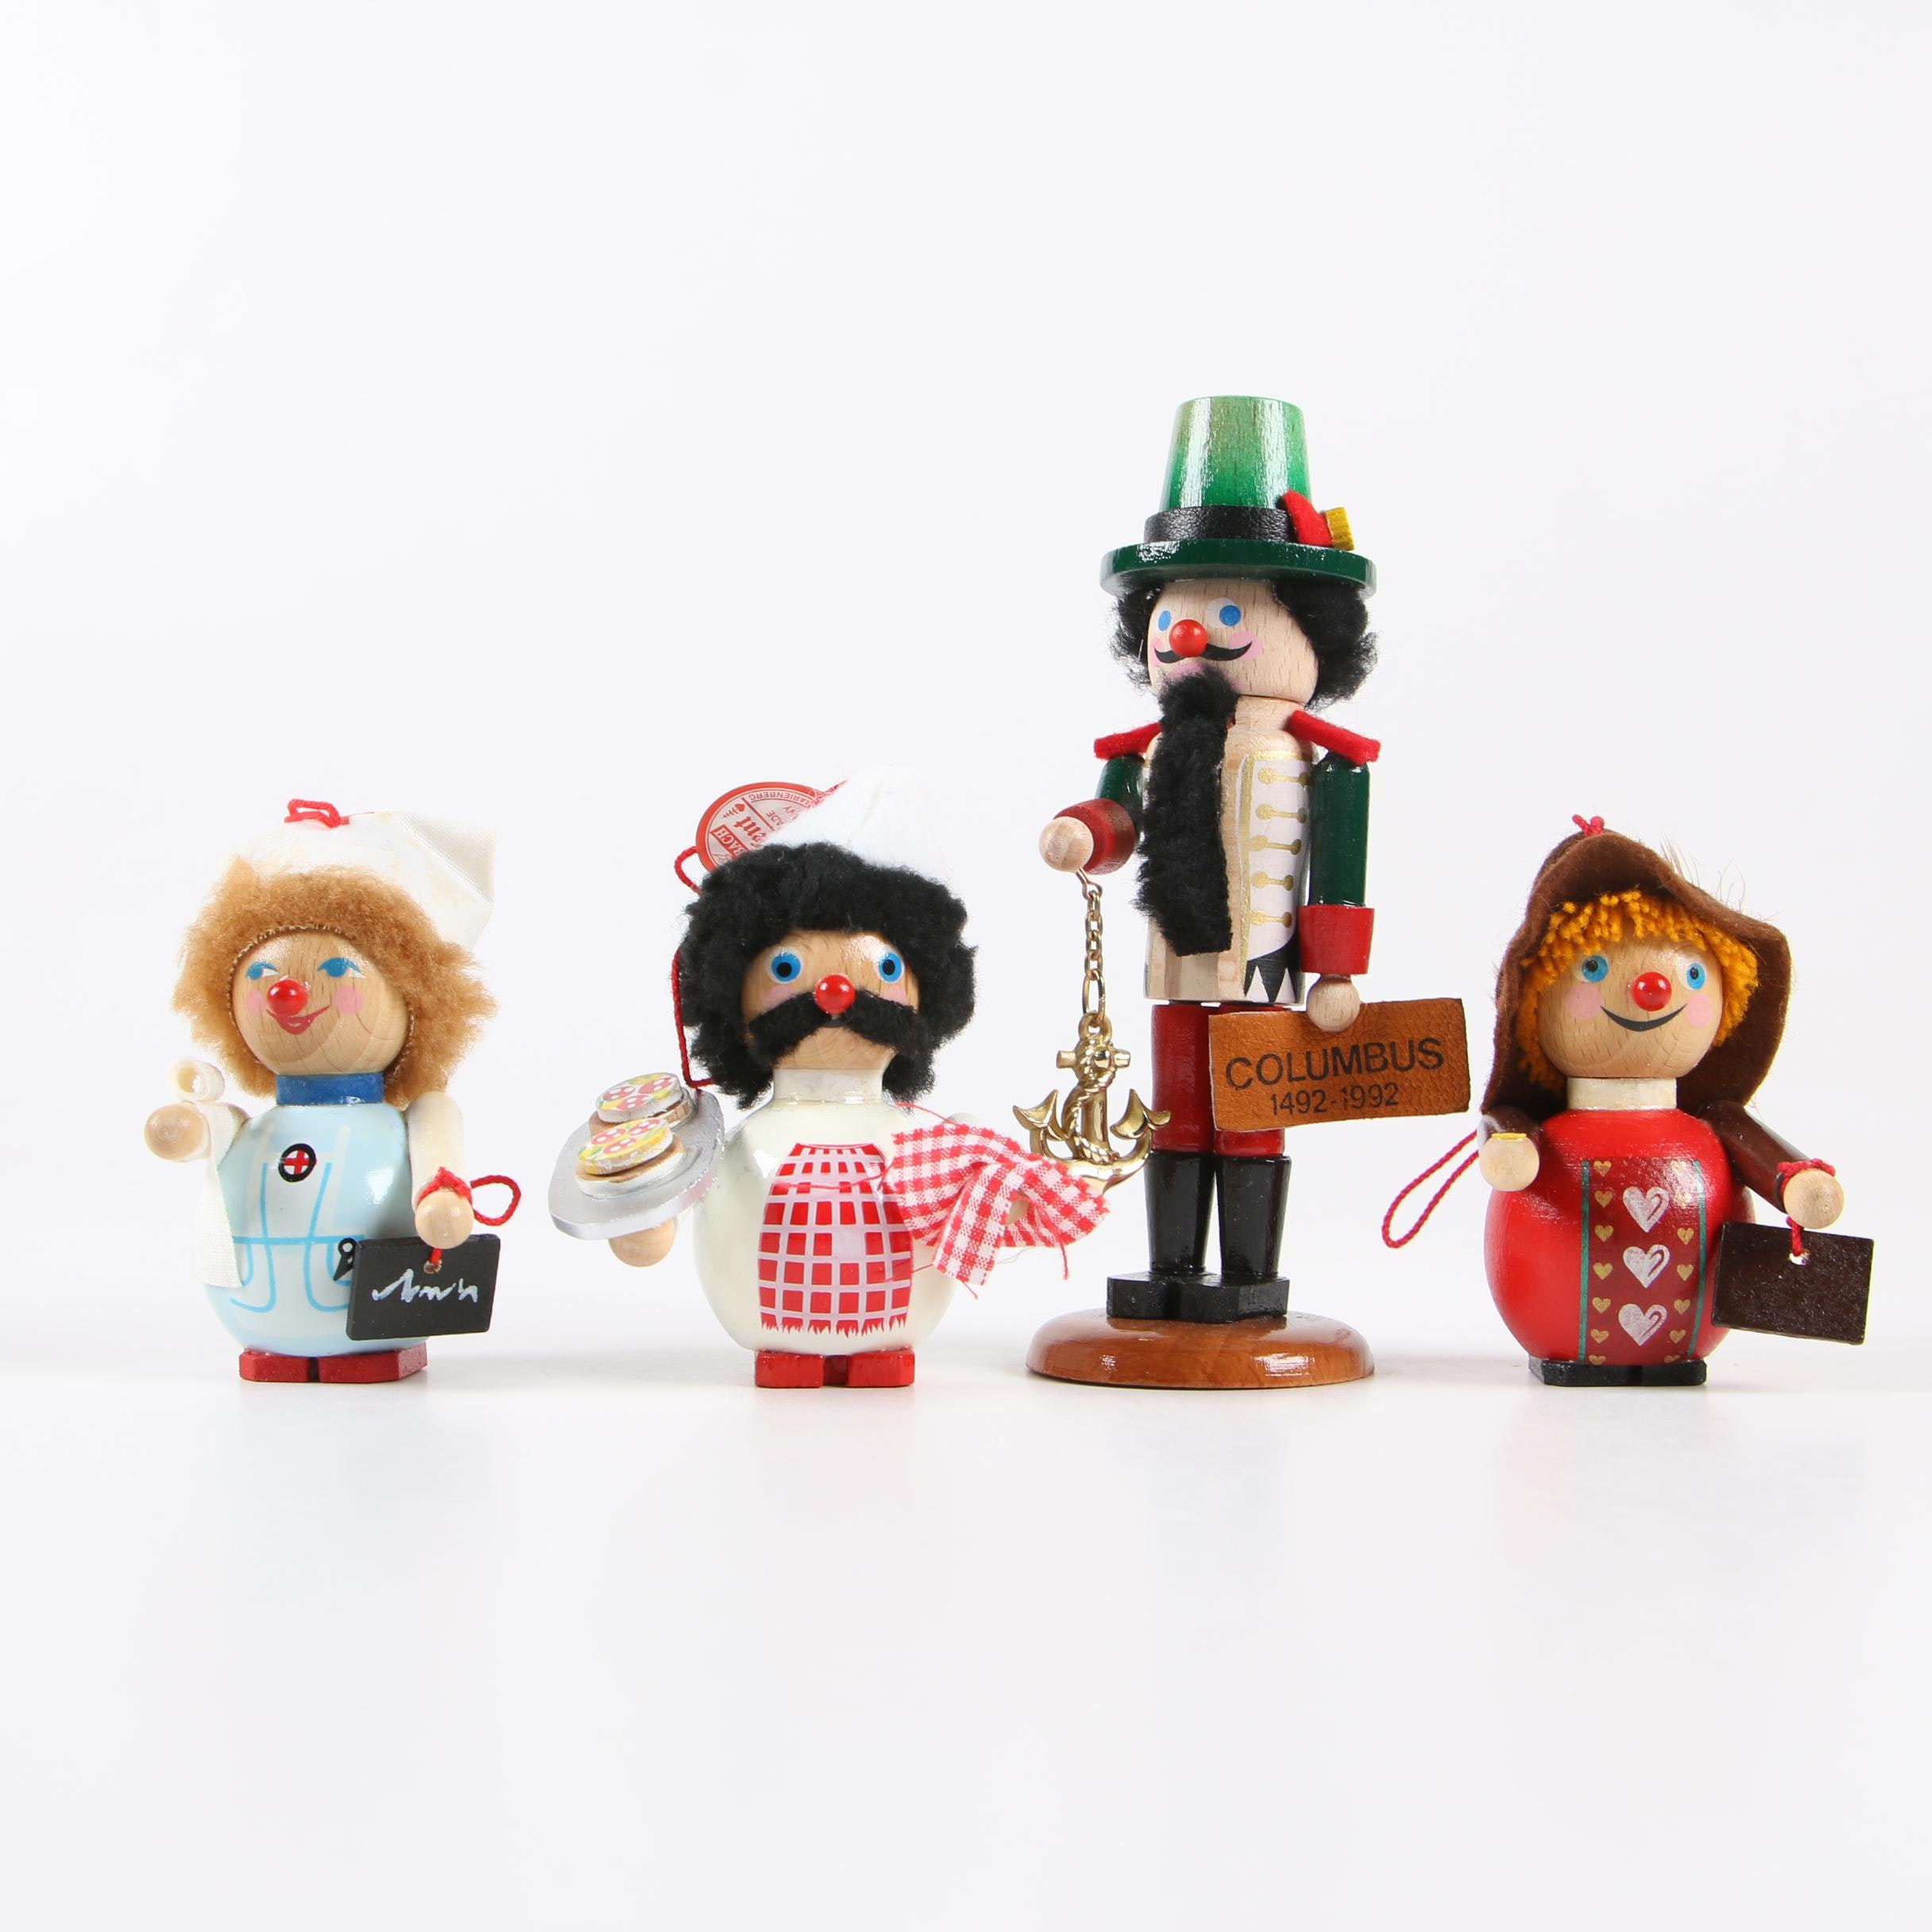 Steinbach Handmade German Nutcracker Ornaments